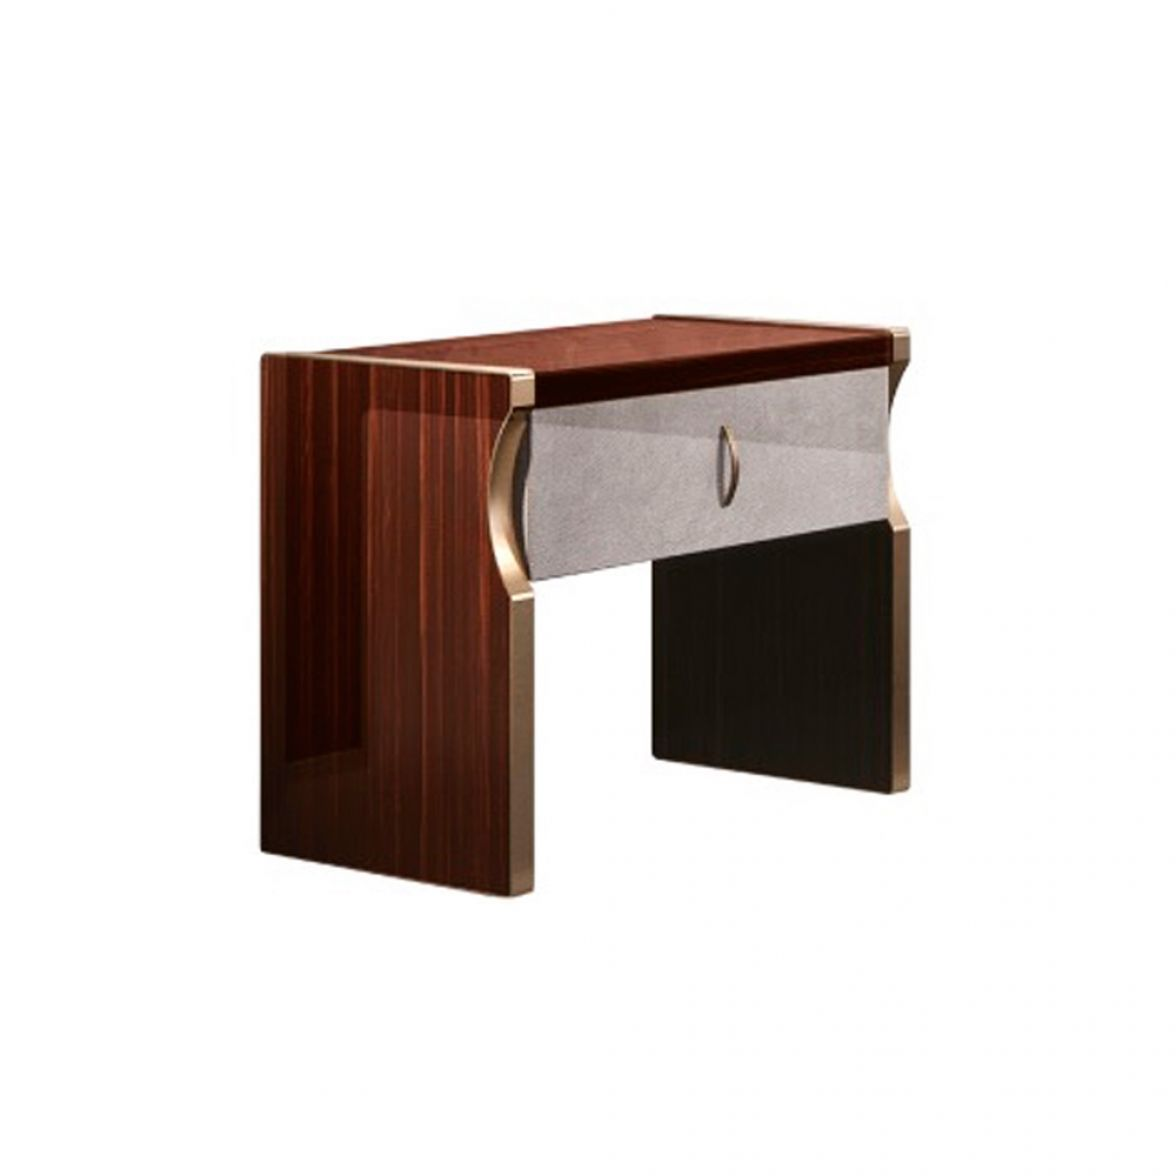 Trilogy bedside table